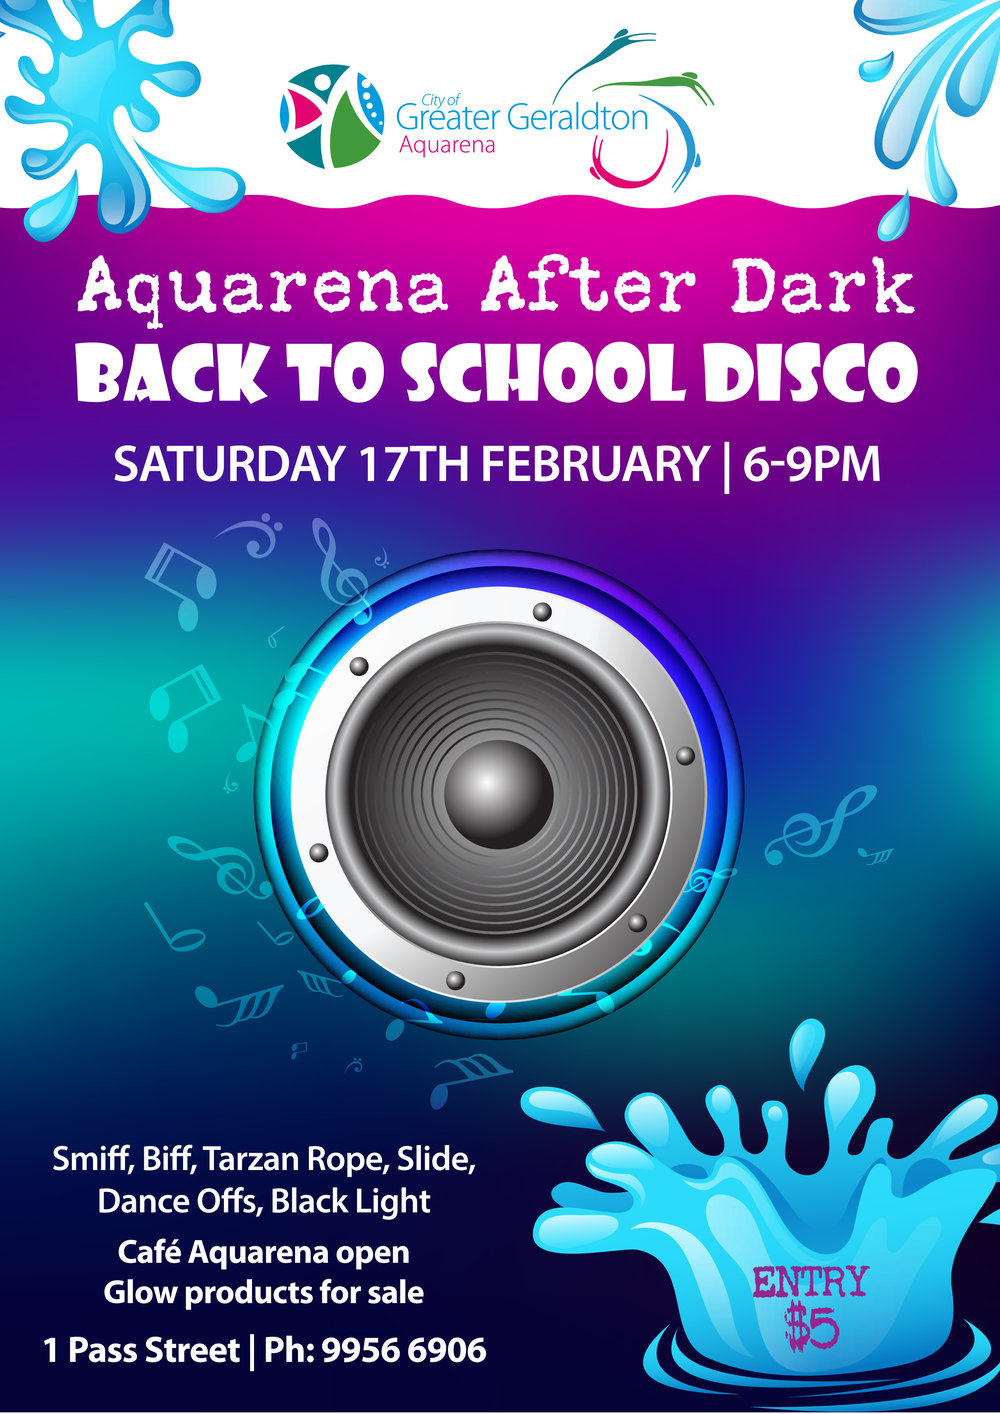 Back to School Disco poster.eps